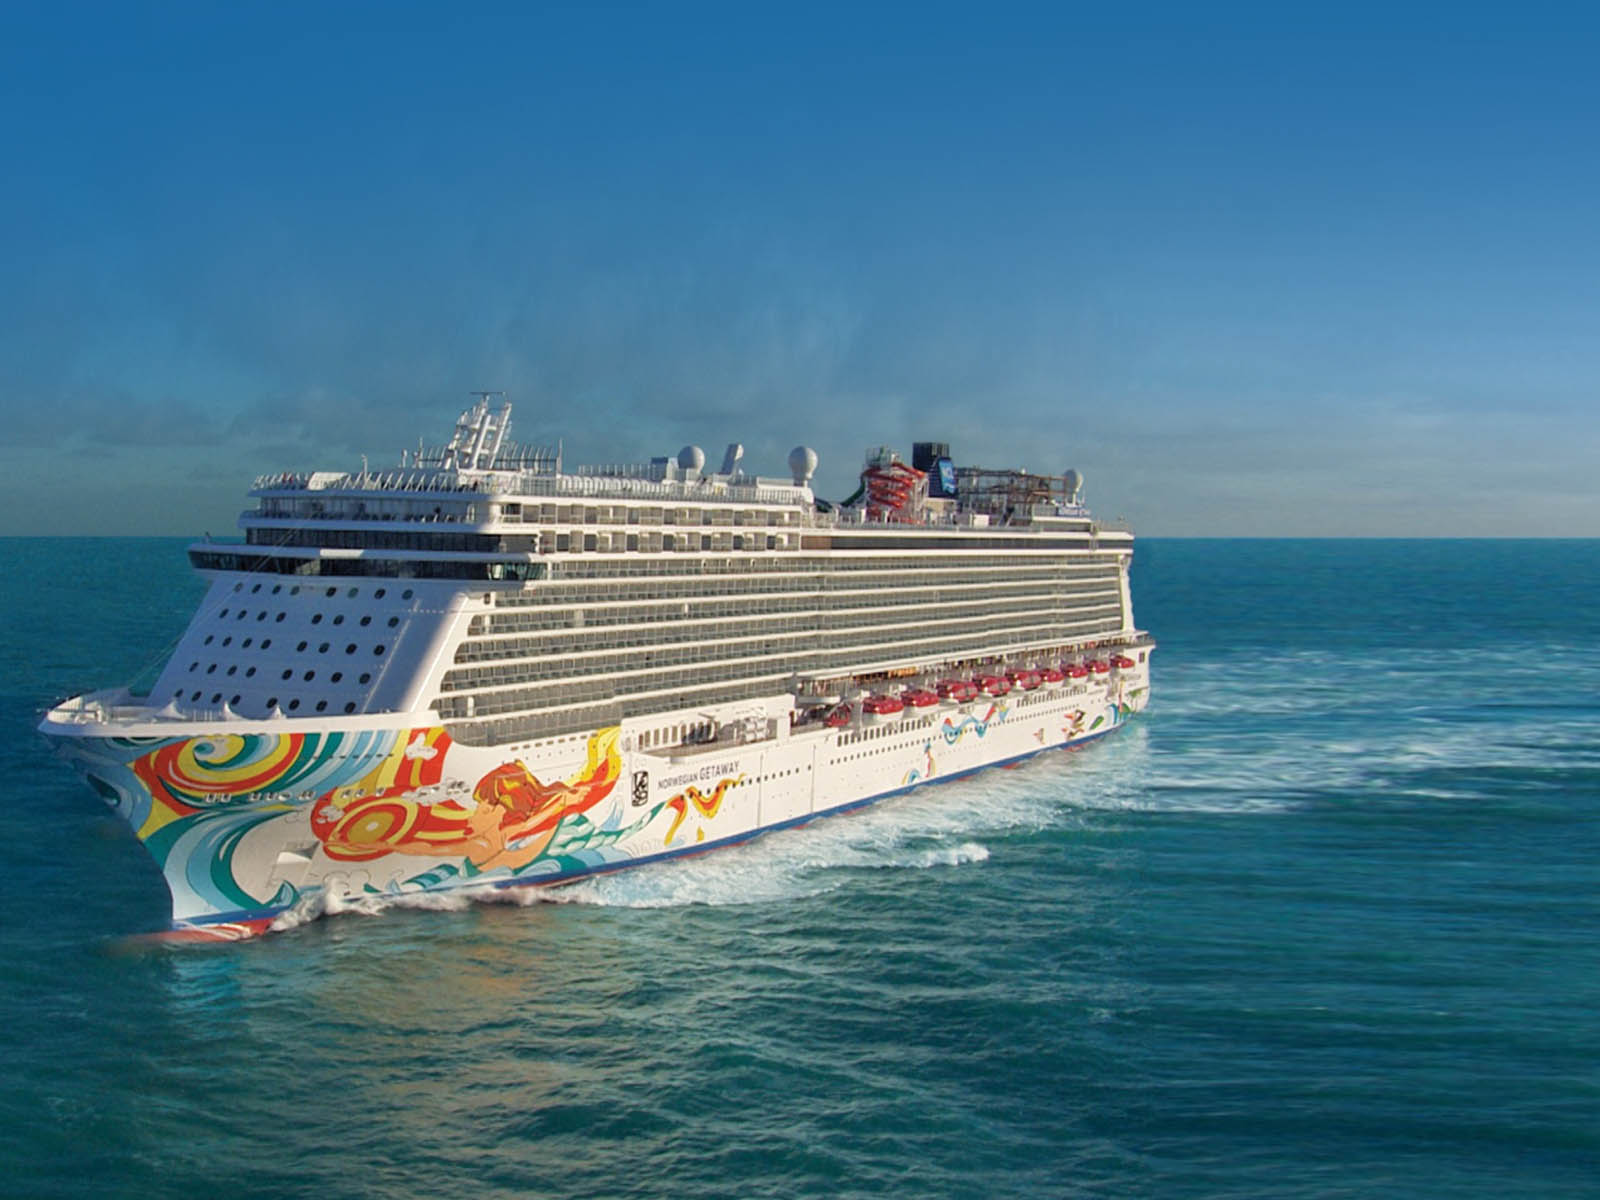 Norwegian Cruiseline - Norwegian Getaway Ship